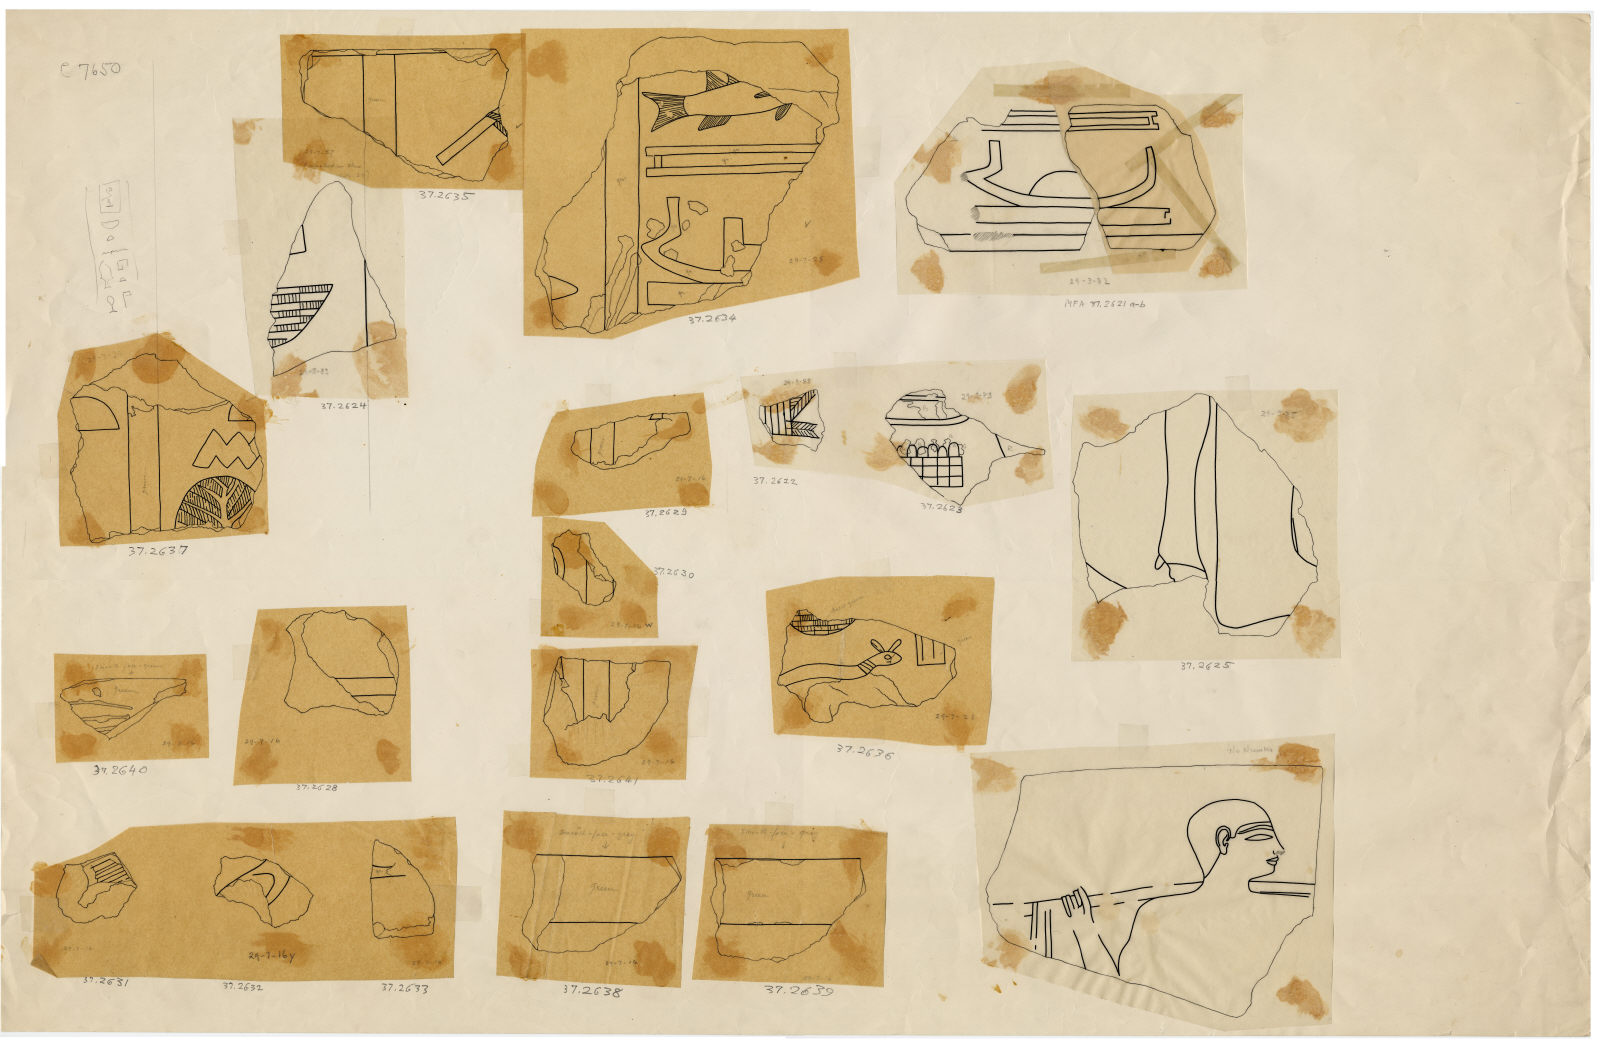 Drawings: G 7650: relief fragments